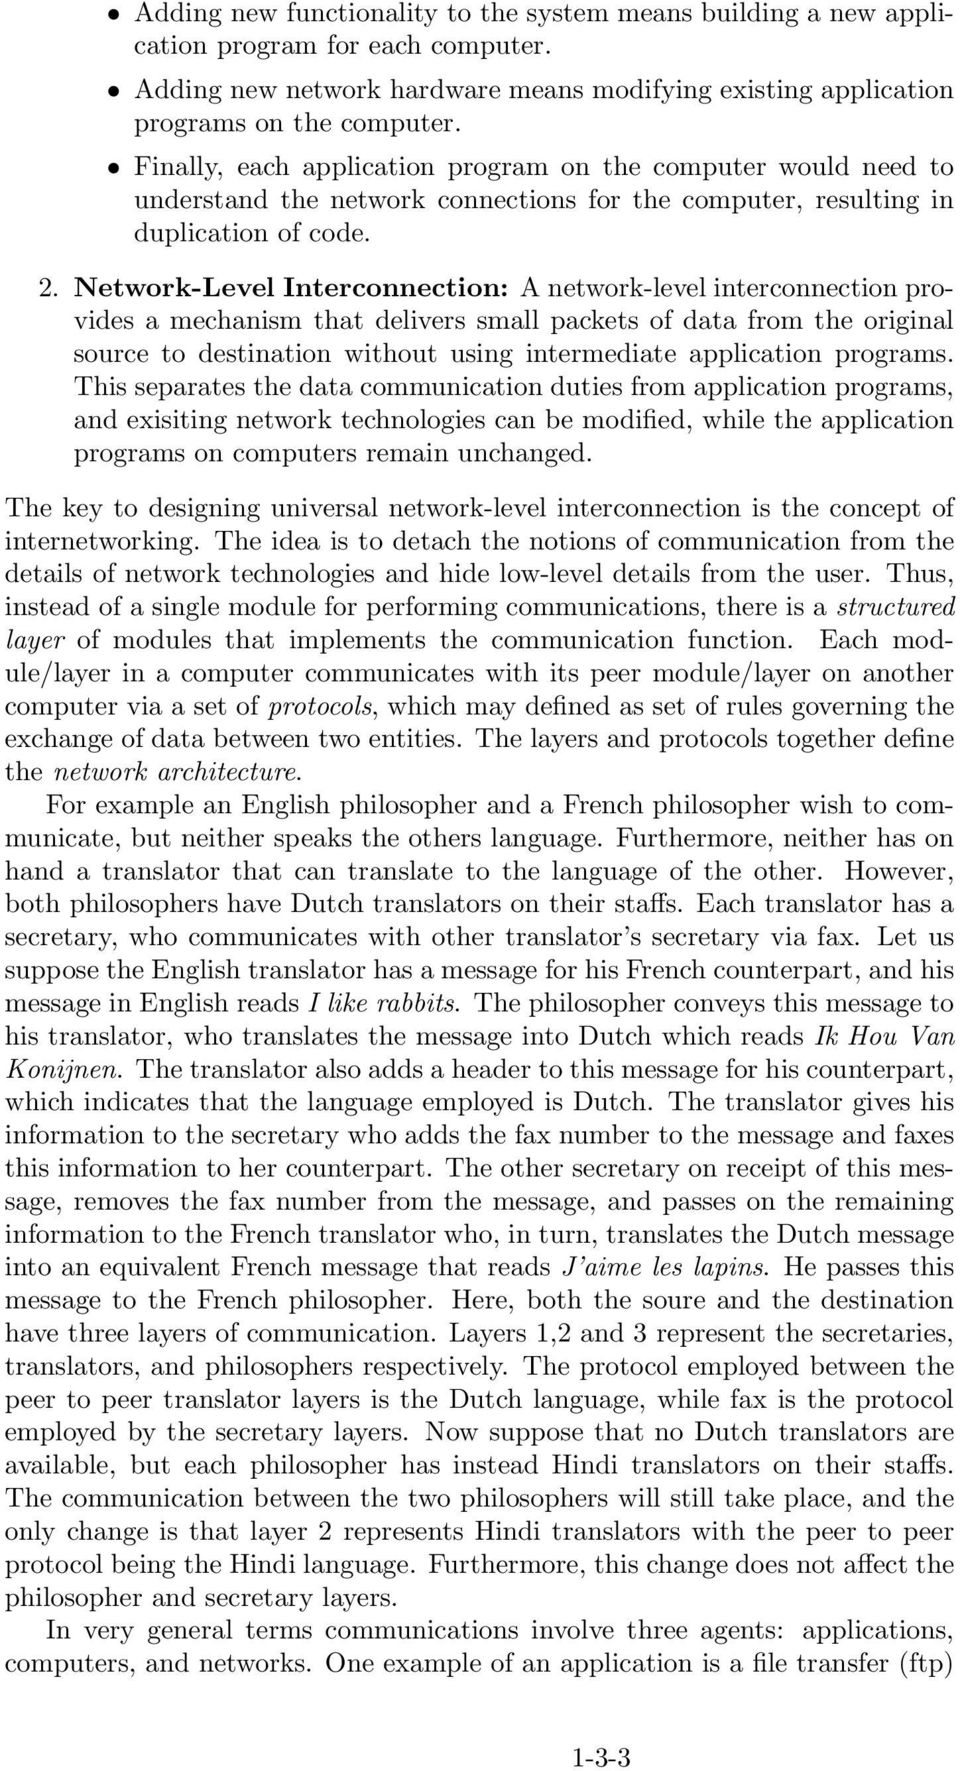 Network-Level Interconnection: A network-level interconnection provides a mechanism that delivers small packets of data from the original source to destination without using intermediate application